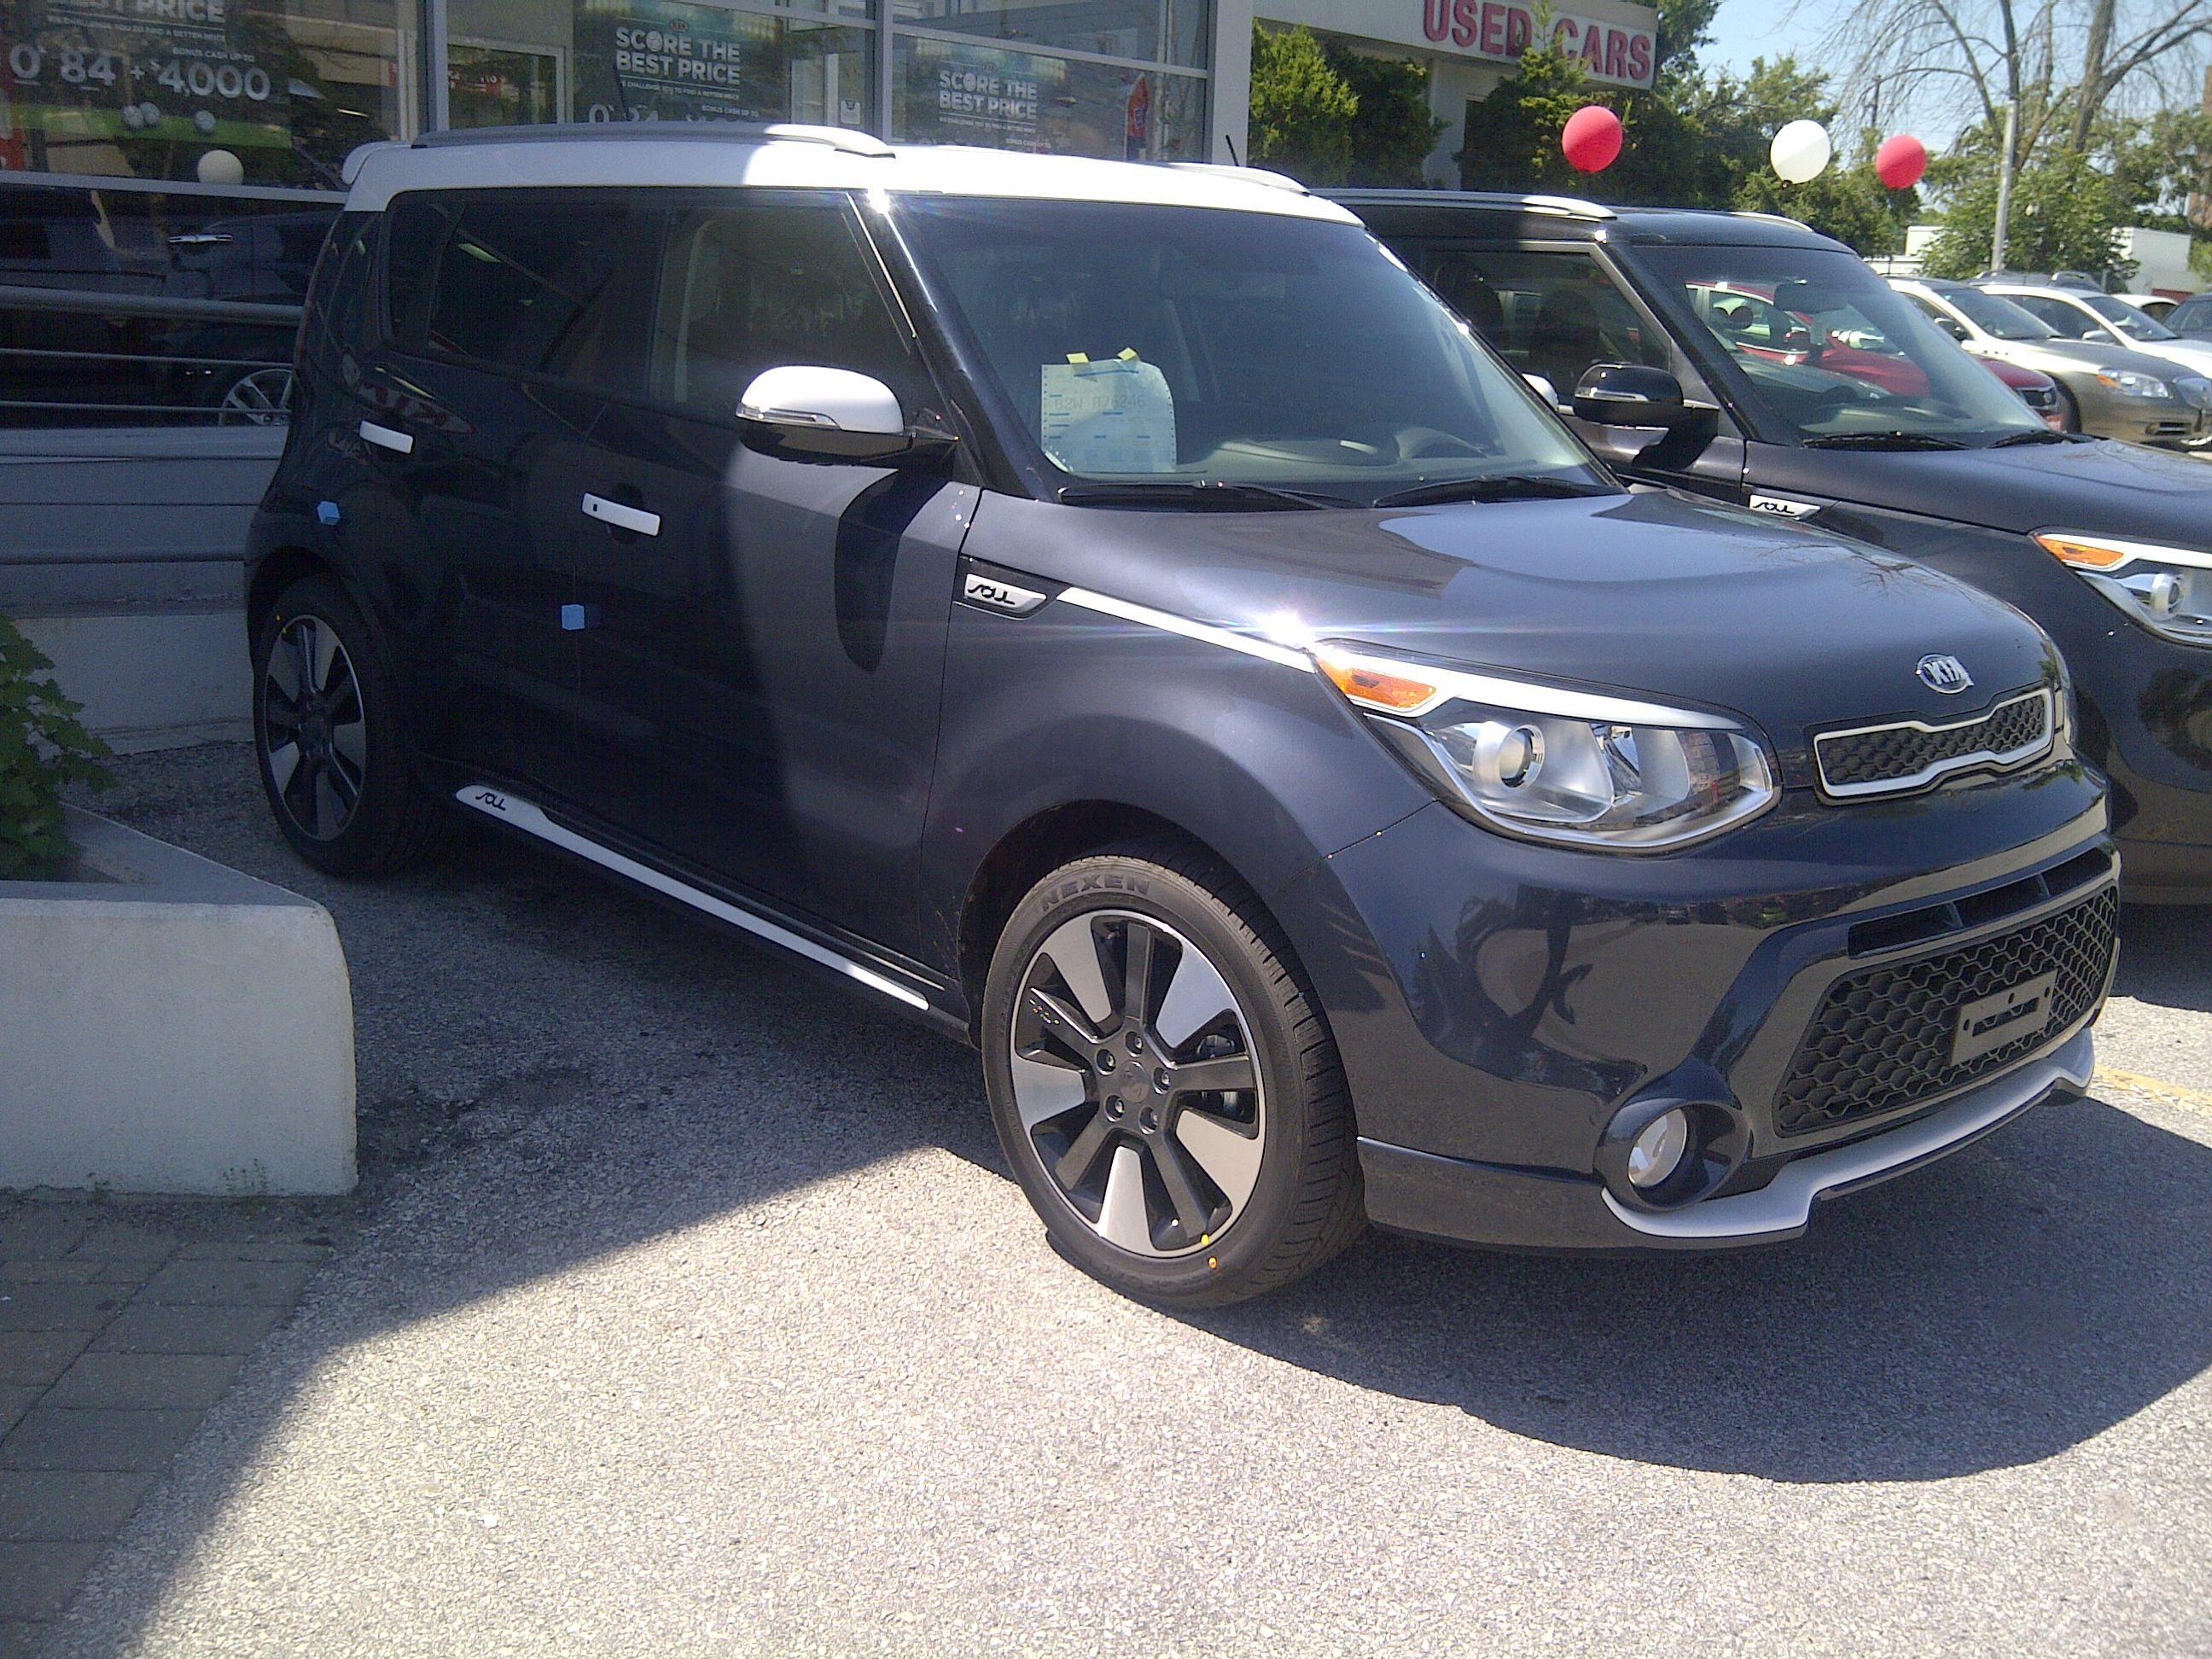 Only 250 Made For Canada Special Edition Soul Sx In Fathom Blue With White Trim Kia Soul Kia Cars Trucks